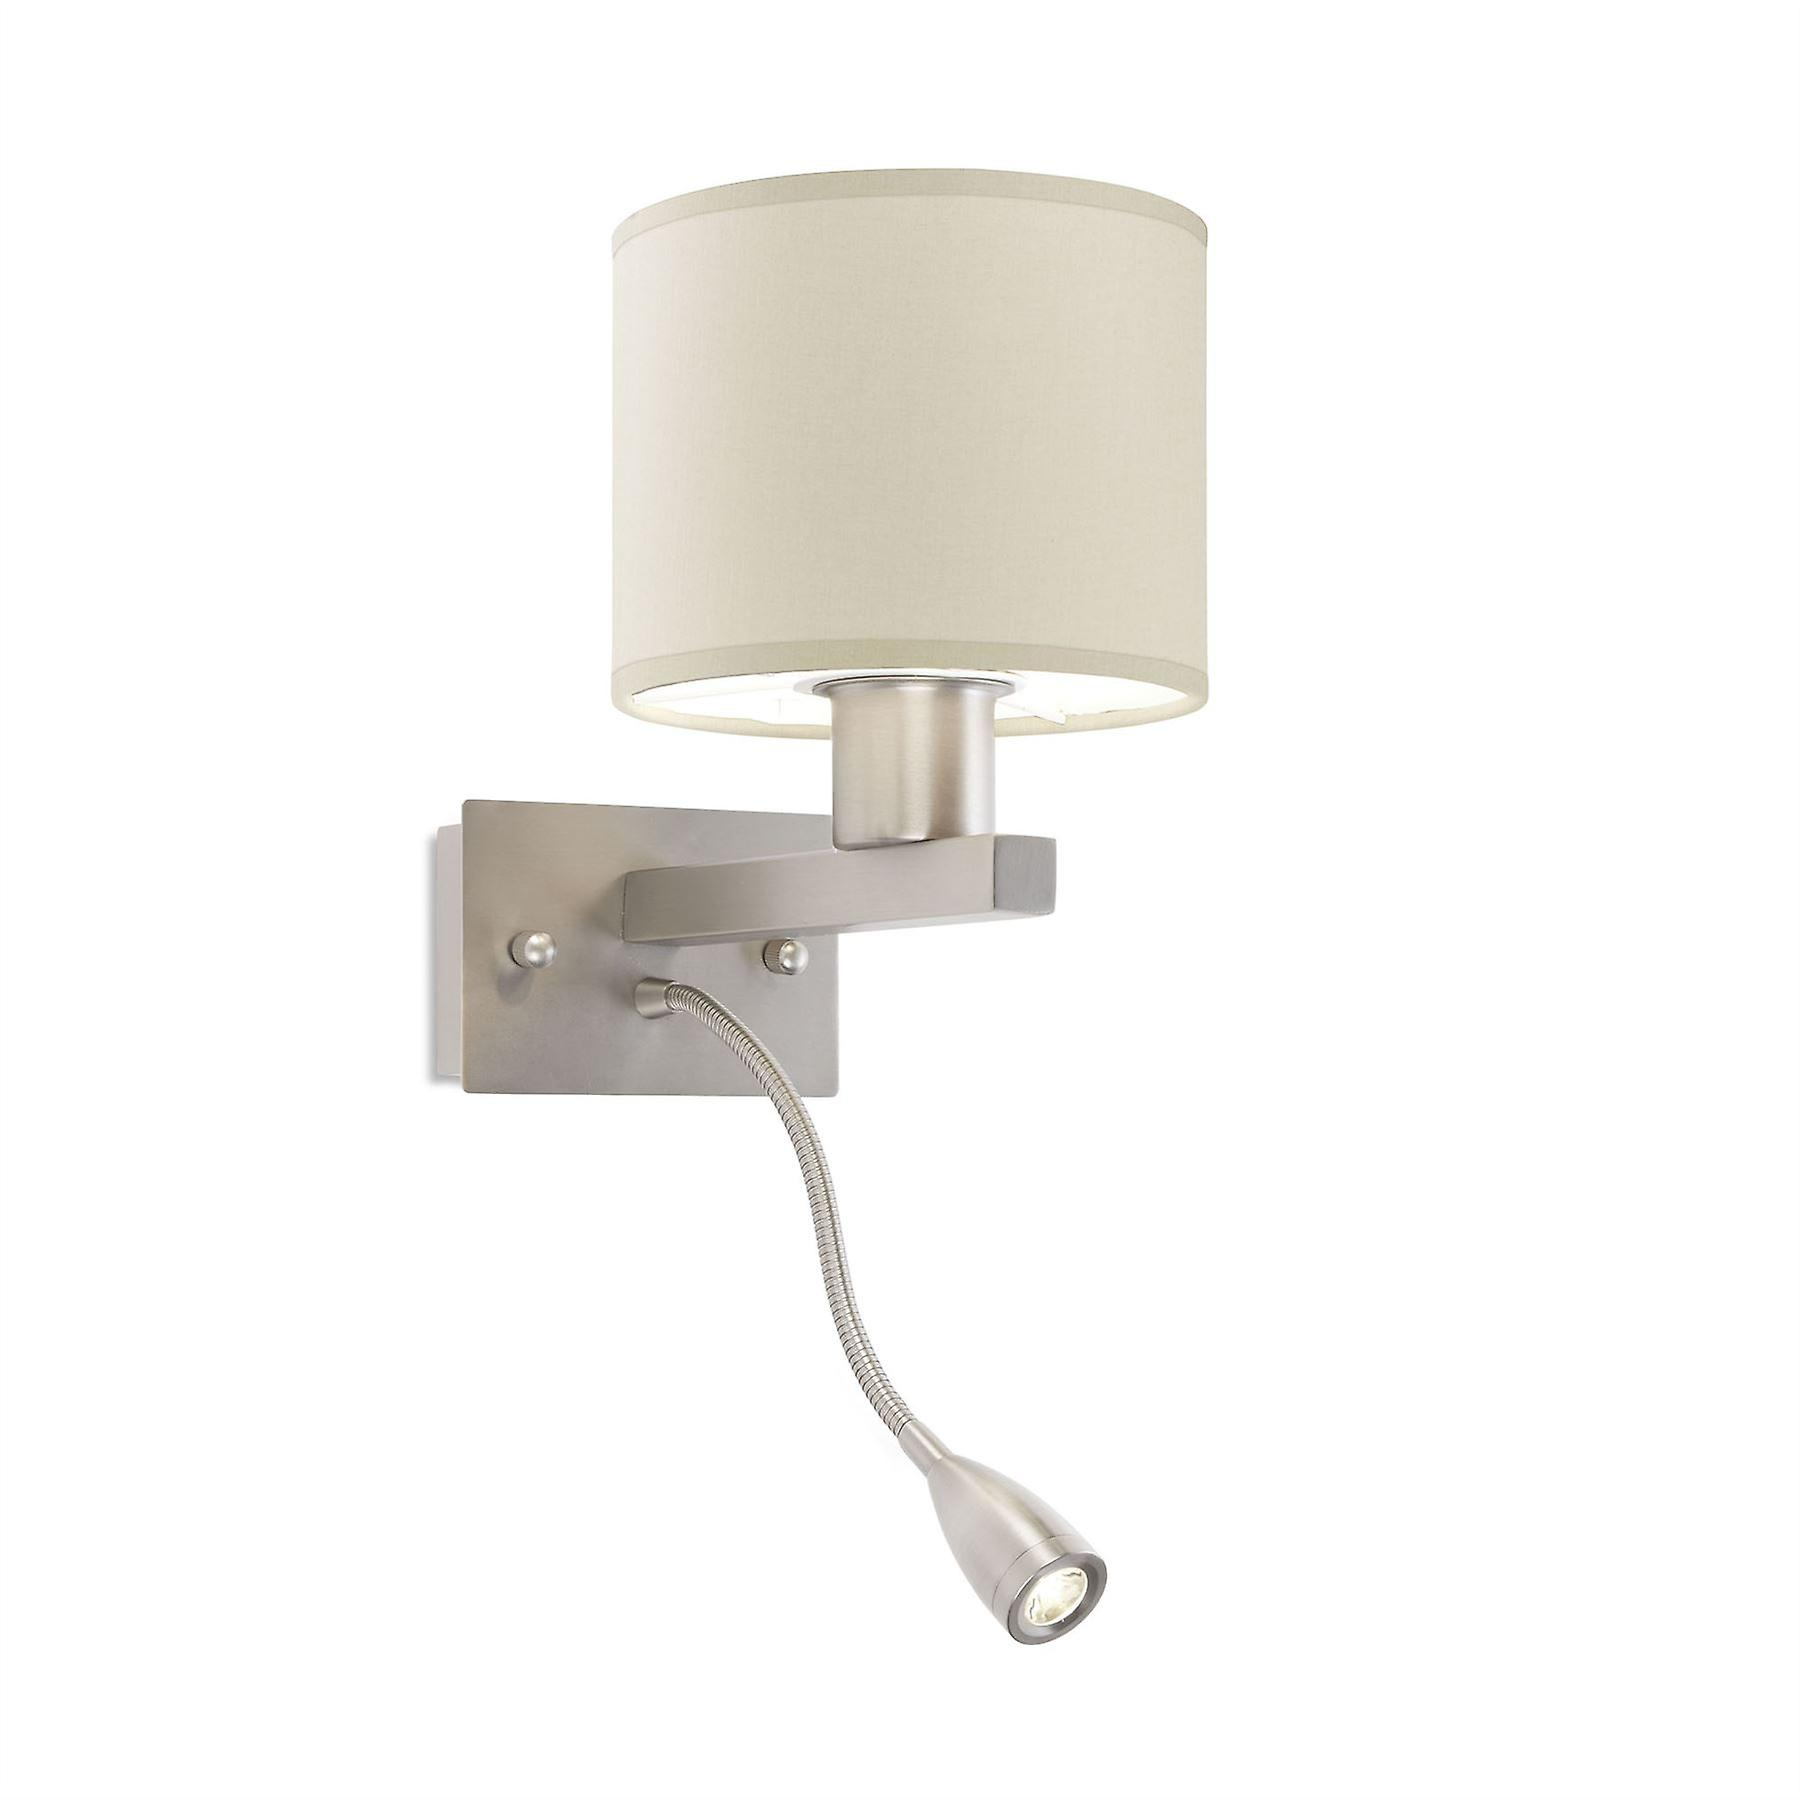 Torino Satin Nickel Wall lumière With LED Reading Lamp - Leds-C4 05-4695-81-82